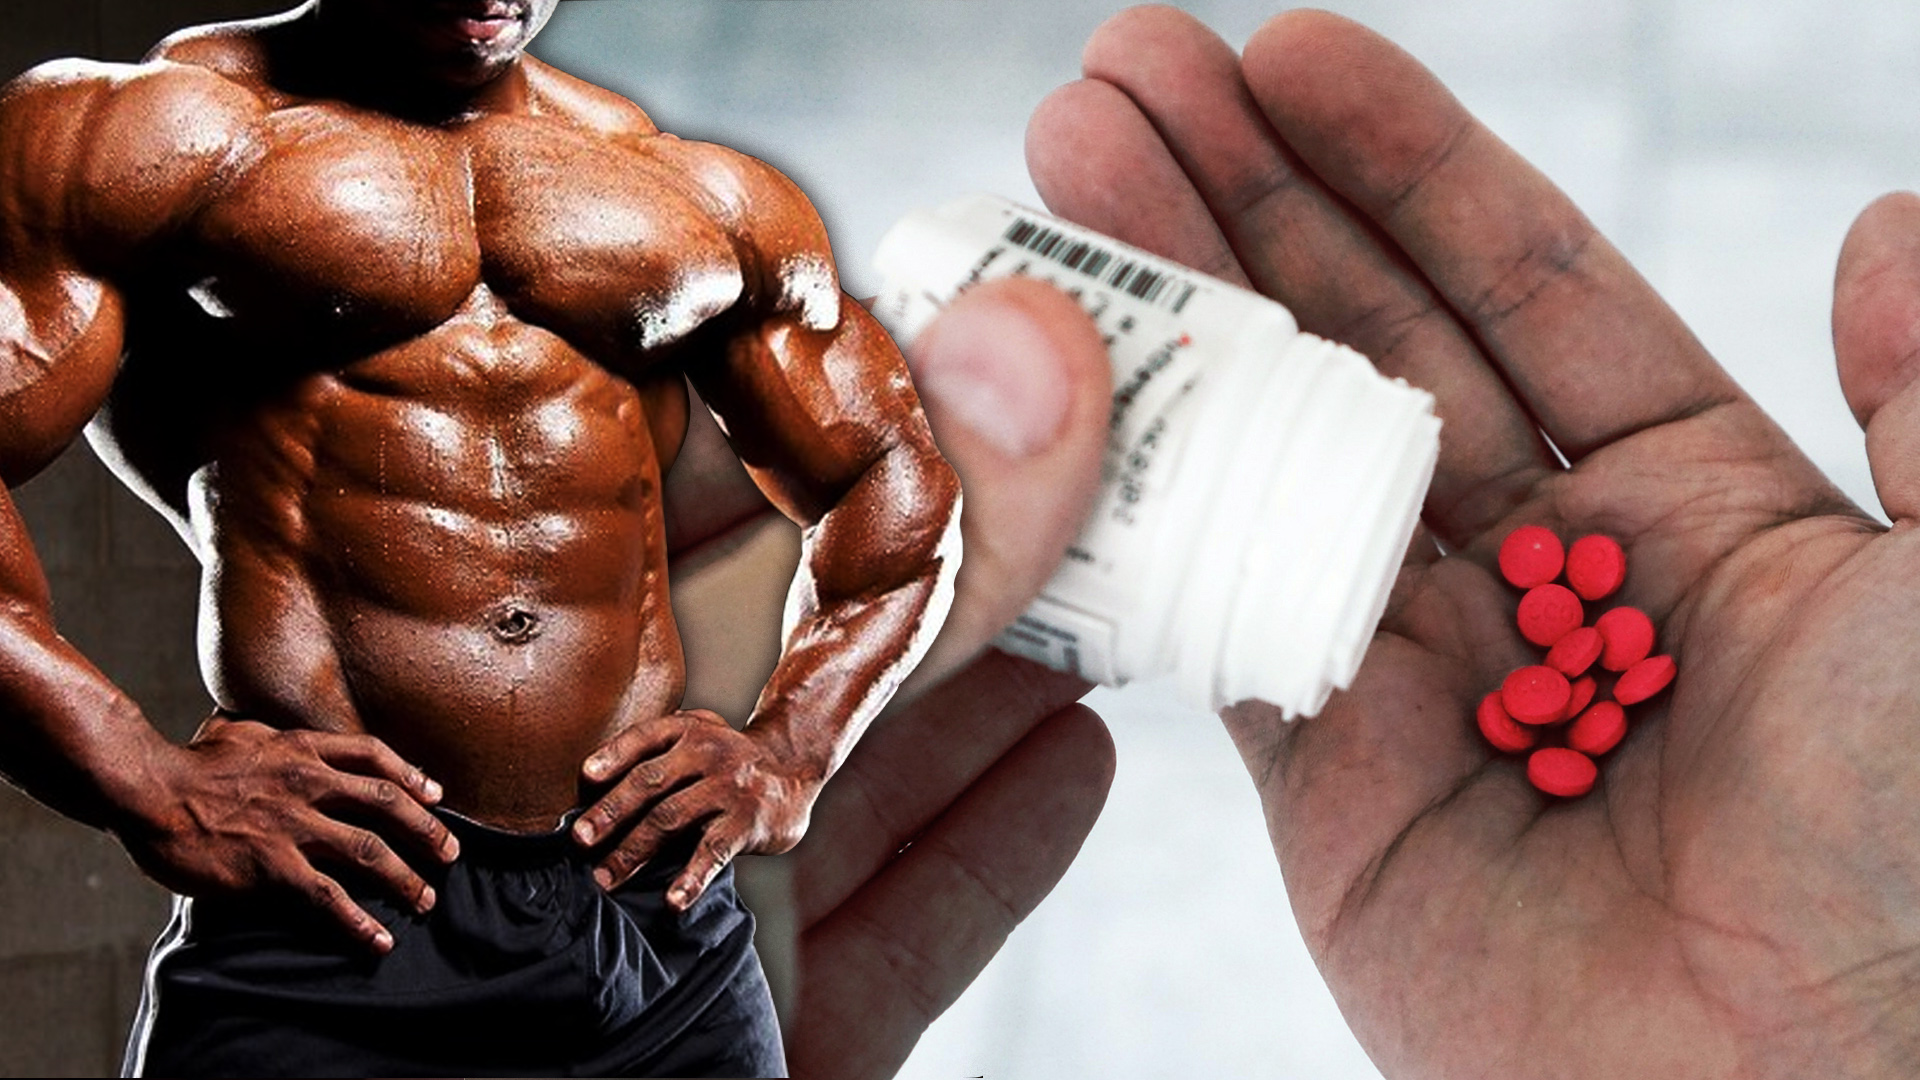 Should You Use An Oral Steroid During Your Bulk Cycle